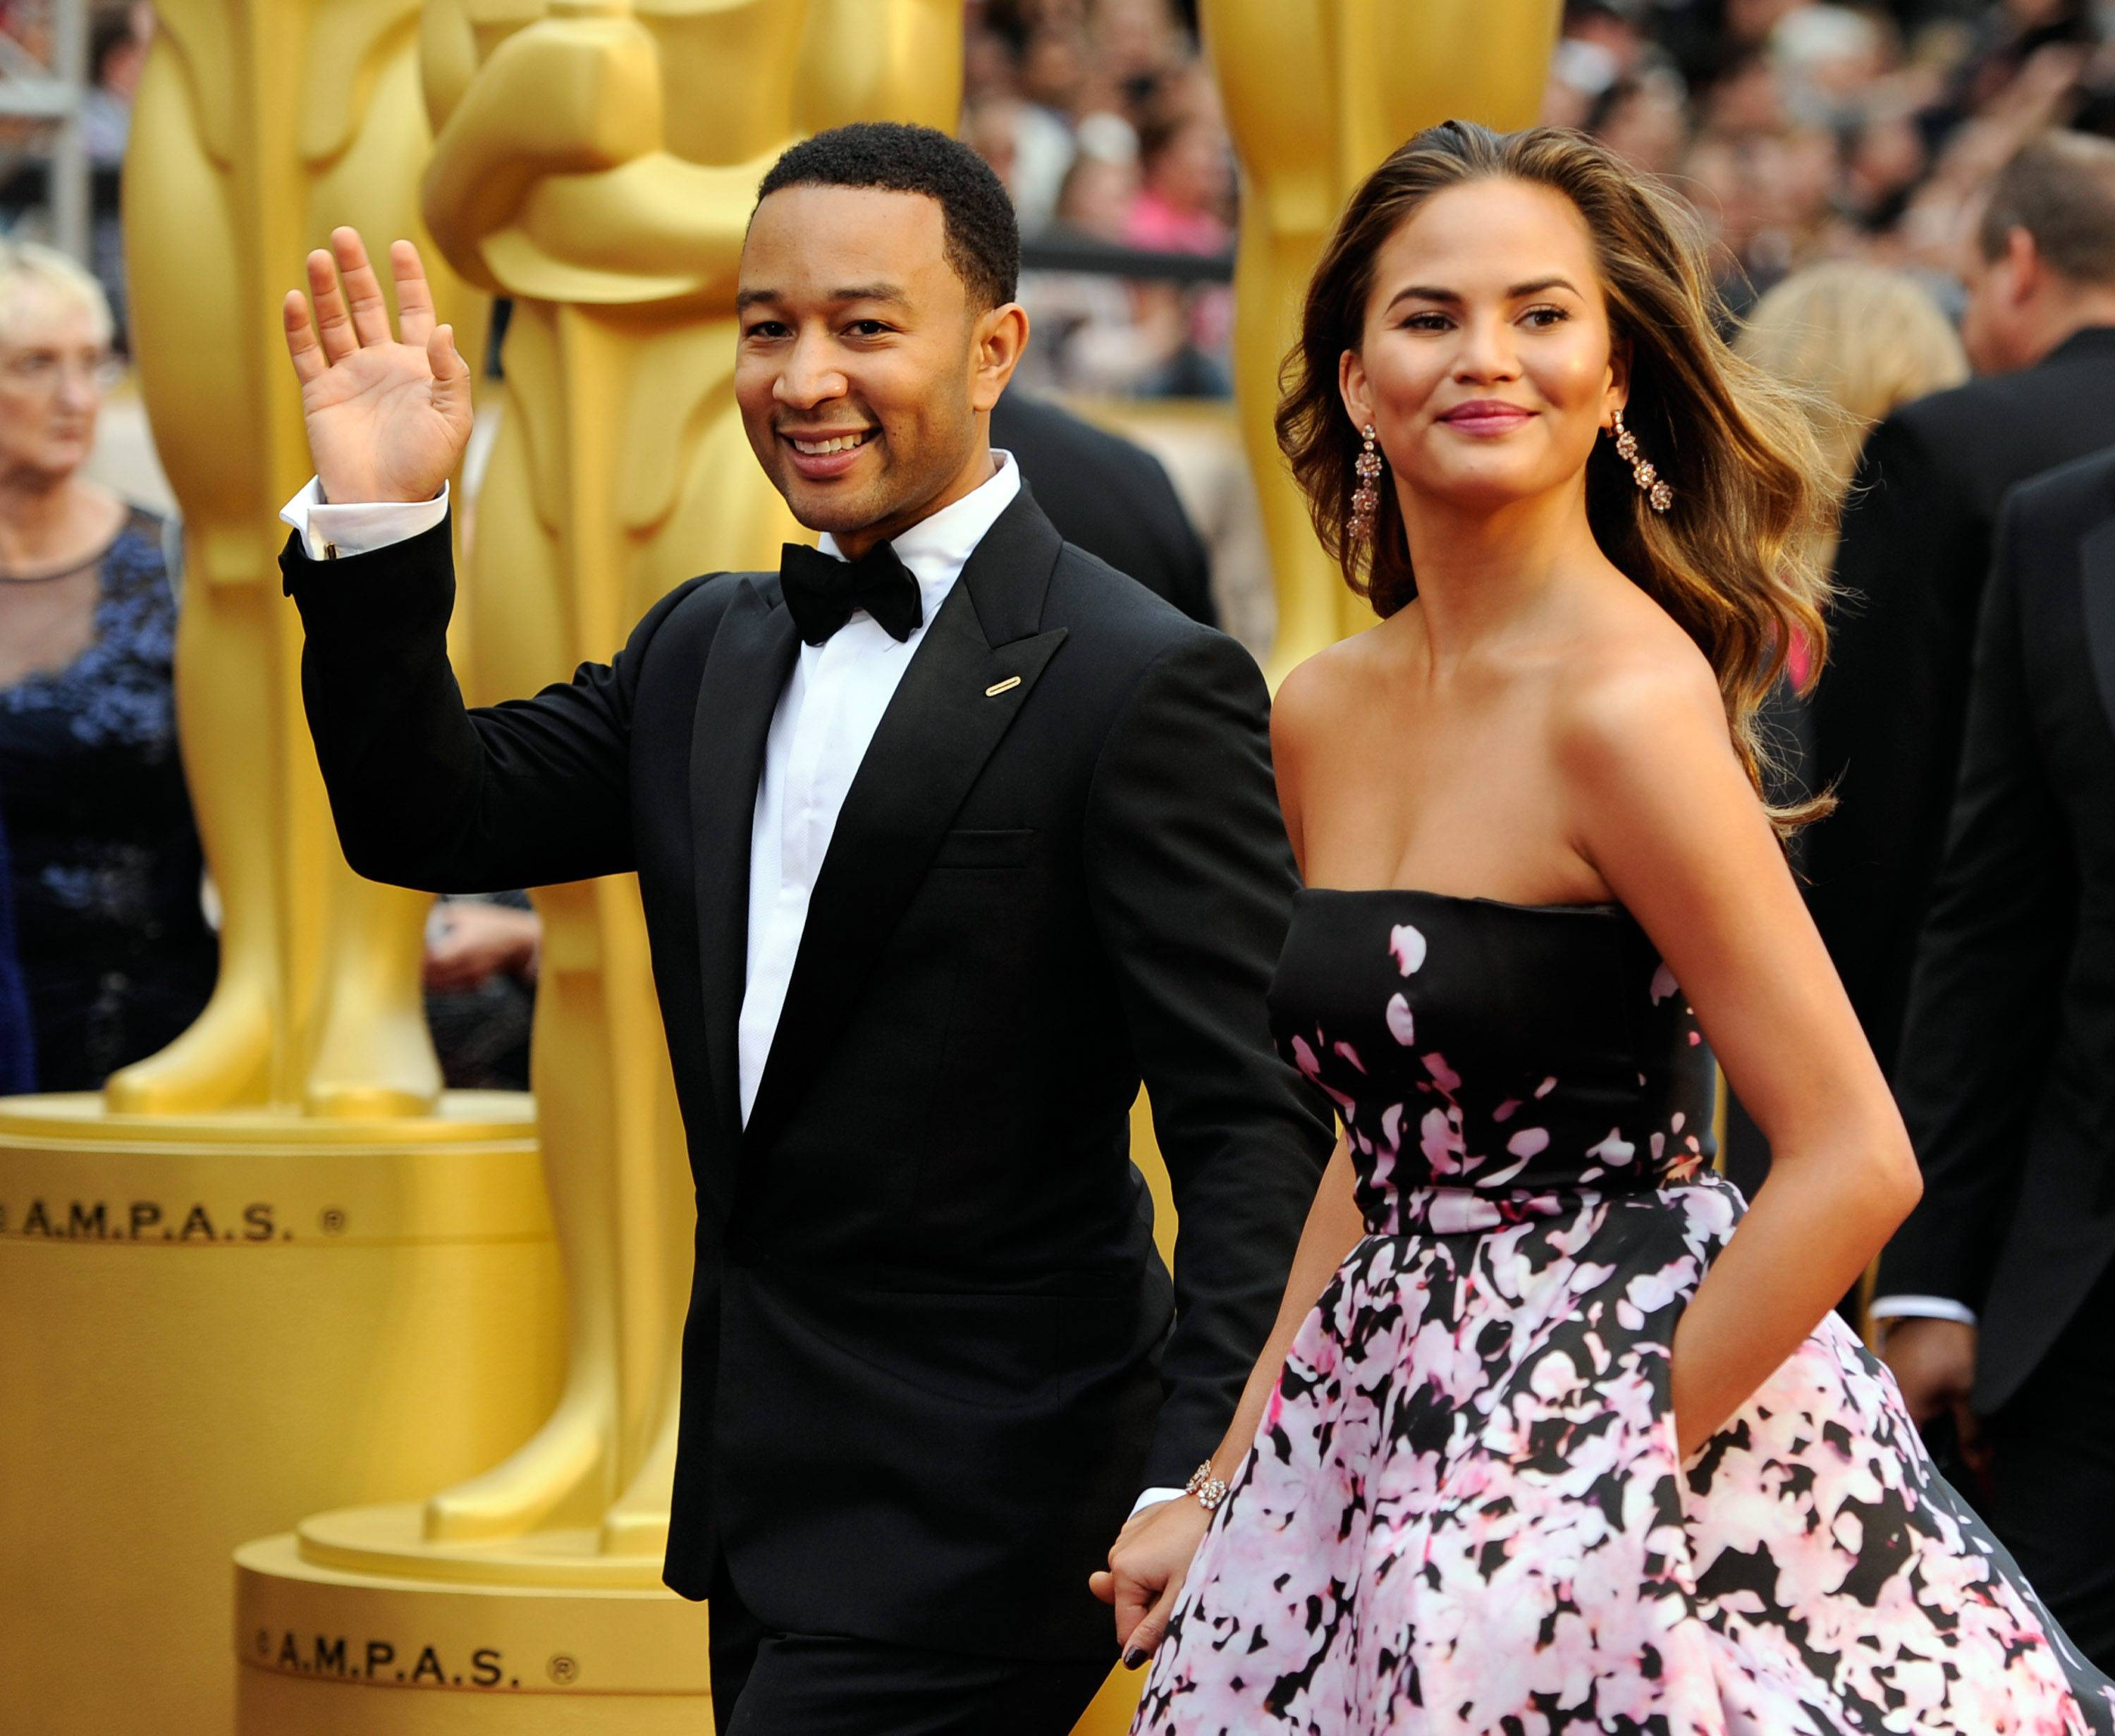 Musician John Legend and his wife, model Christine Teigen, arrive at the Oscars on Sunday.